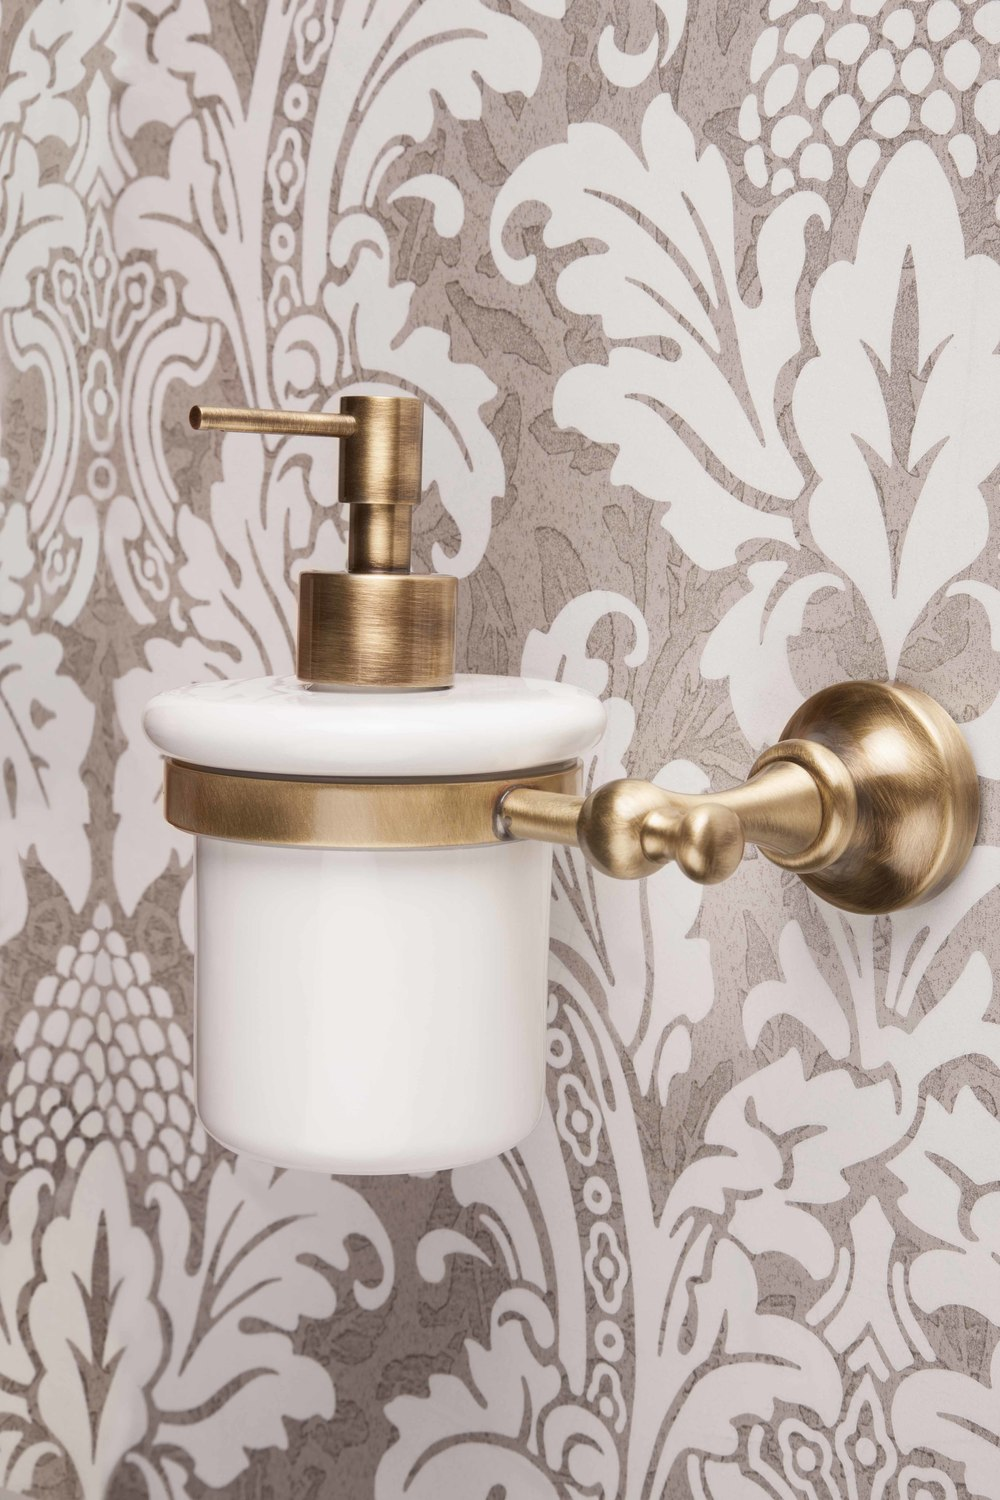 Bathroom Accessories Luxury Bathrooms Glasgow - luxury bathroom accessories